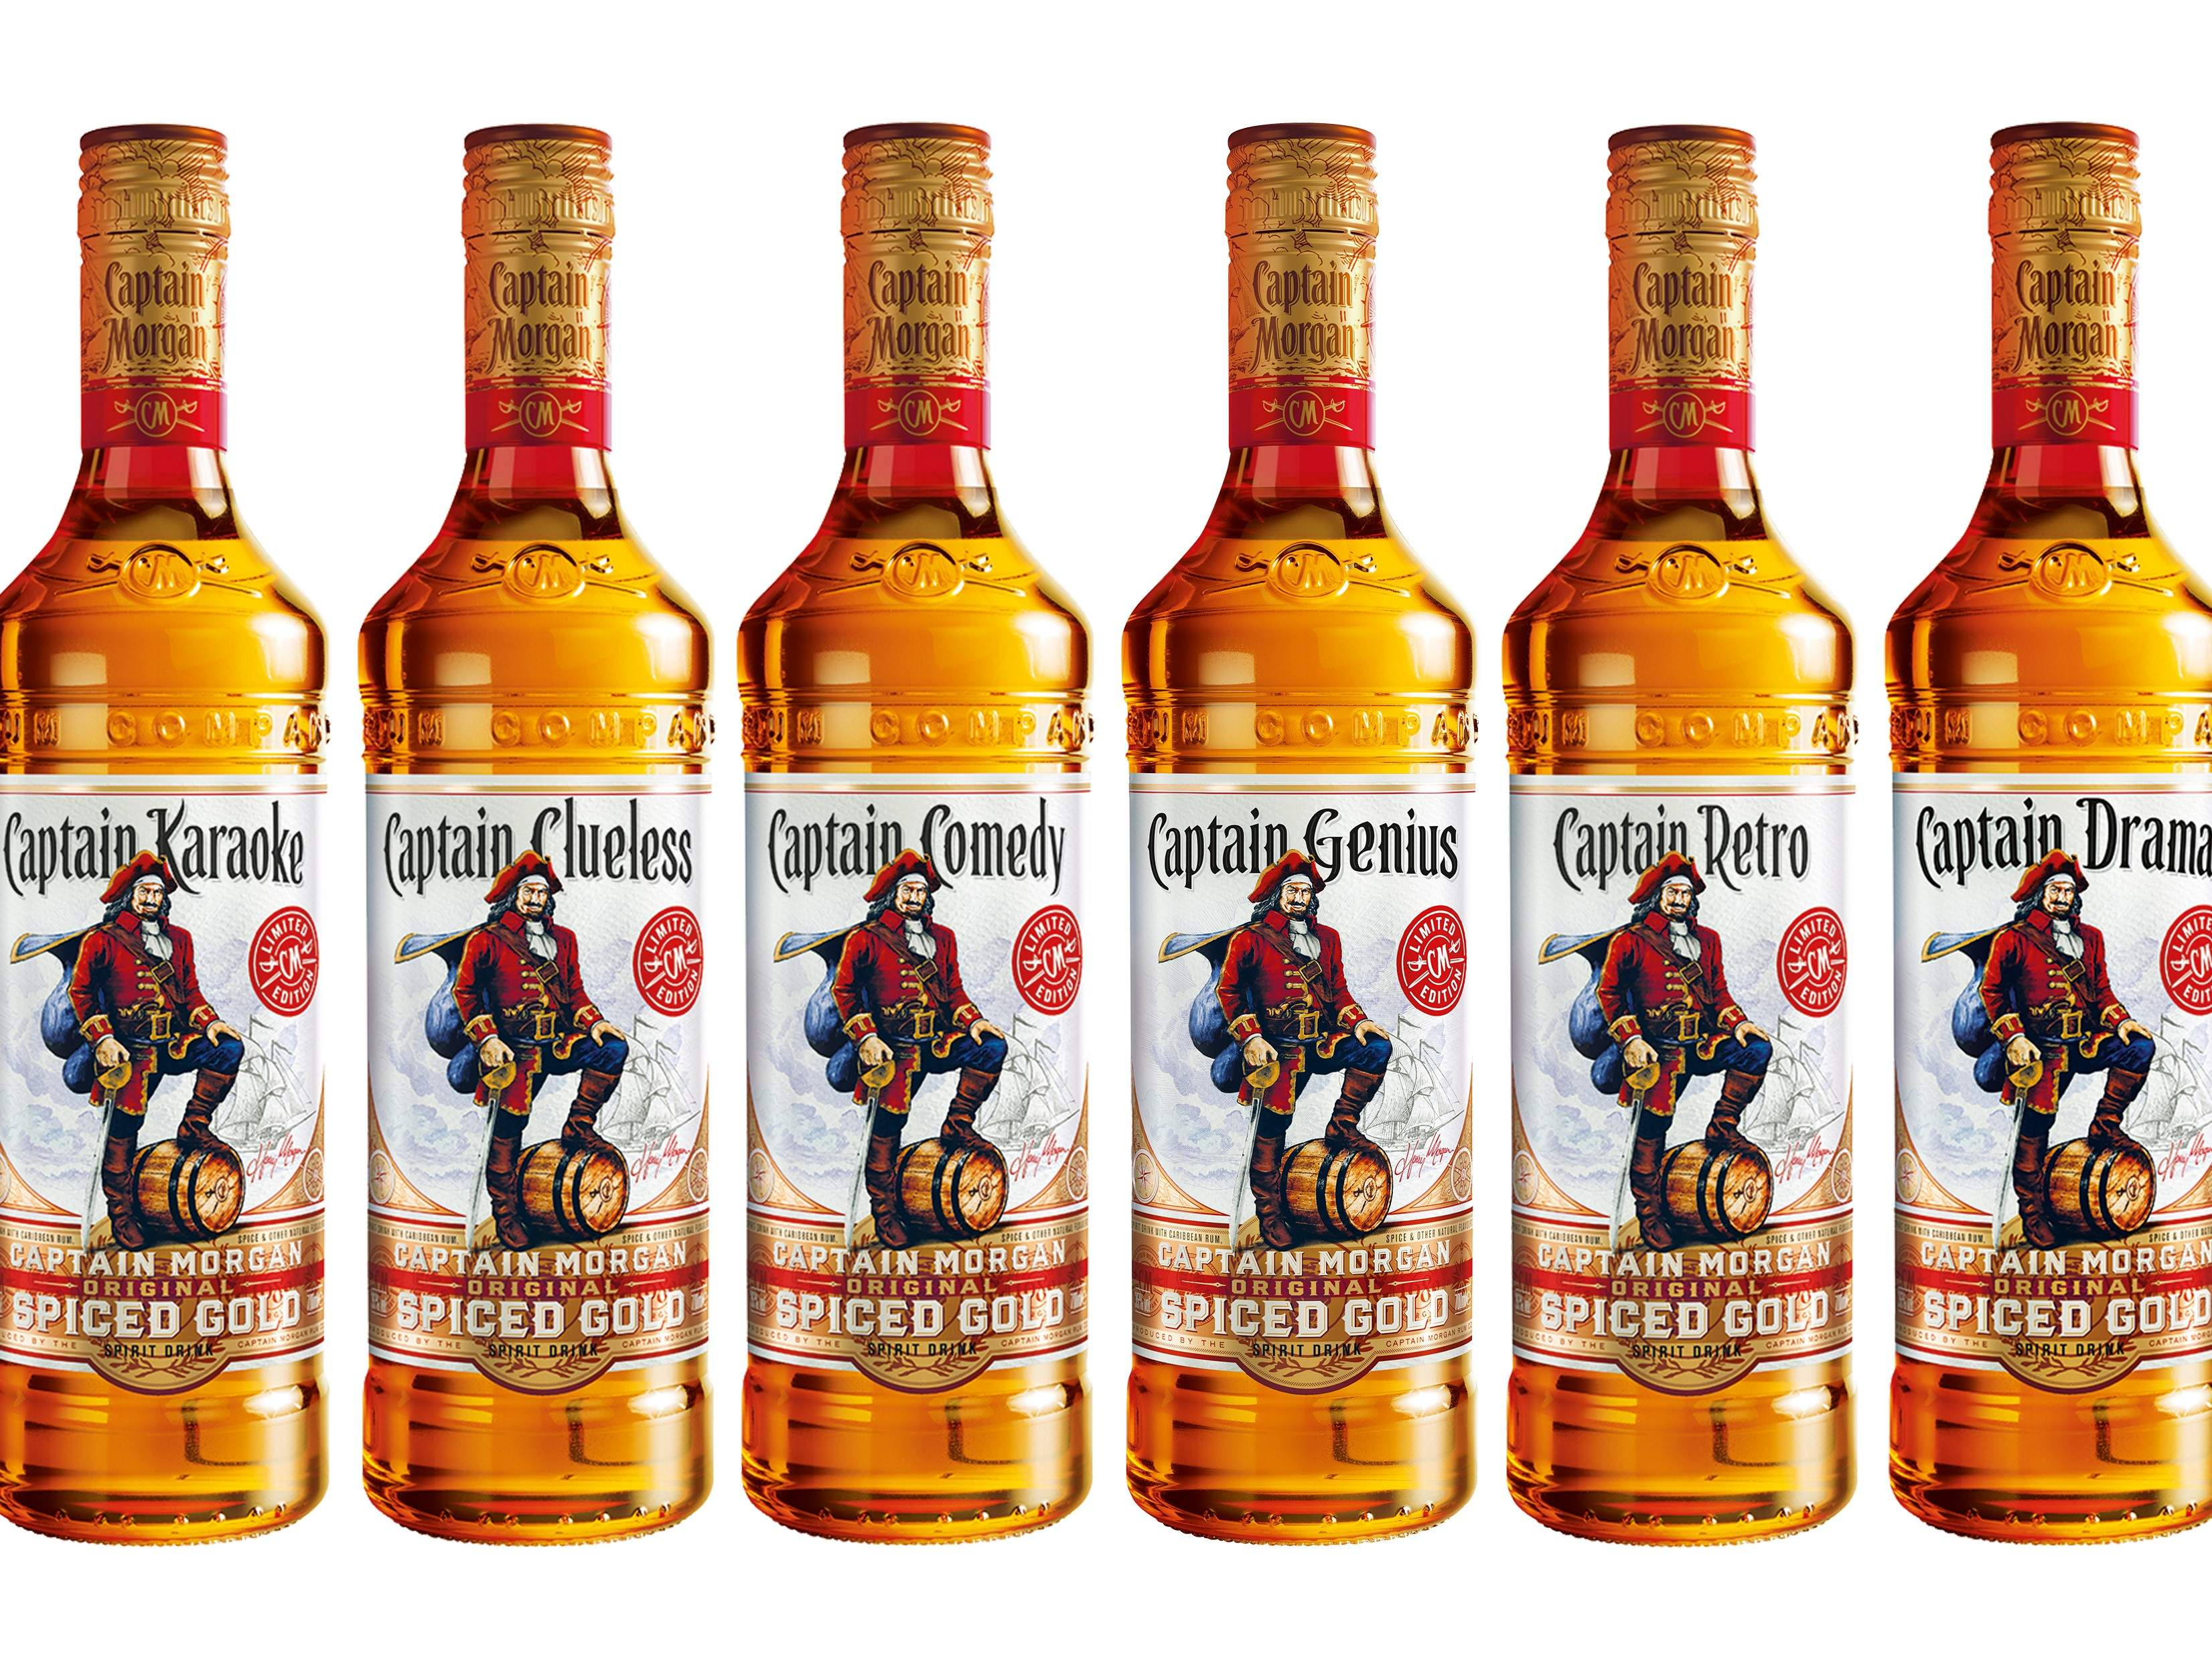 Captain Morgan Replaces Its Name On Limited Edition Bottles